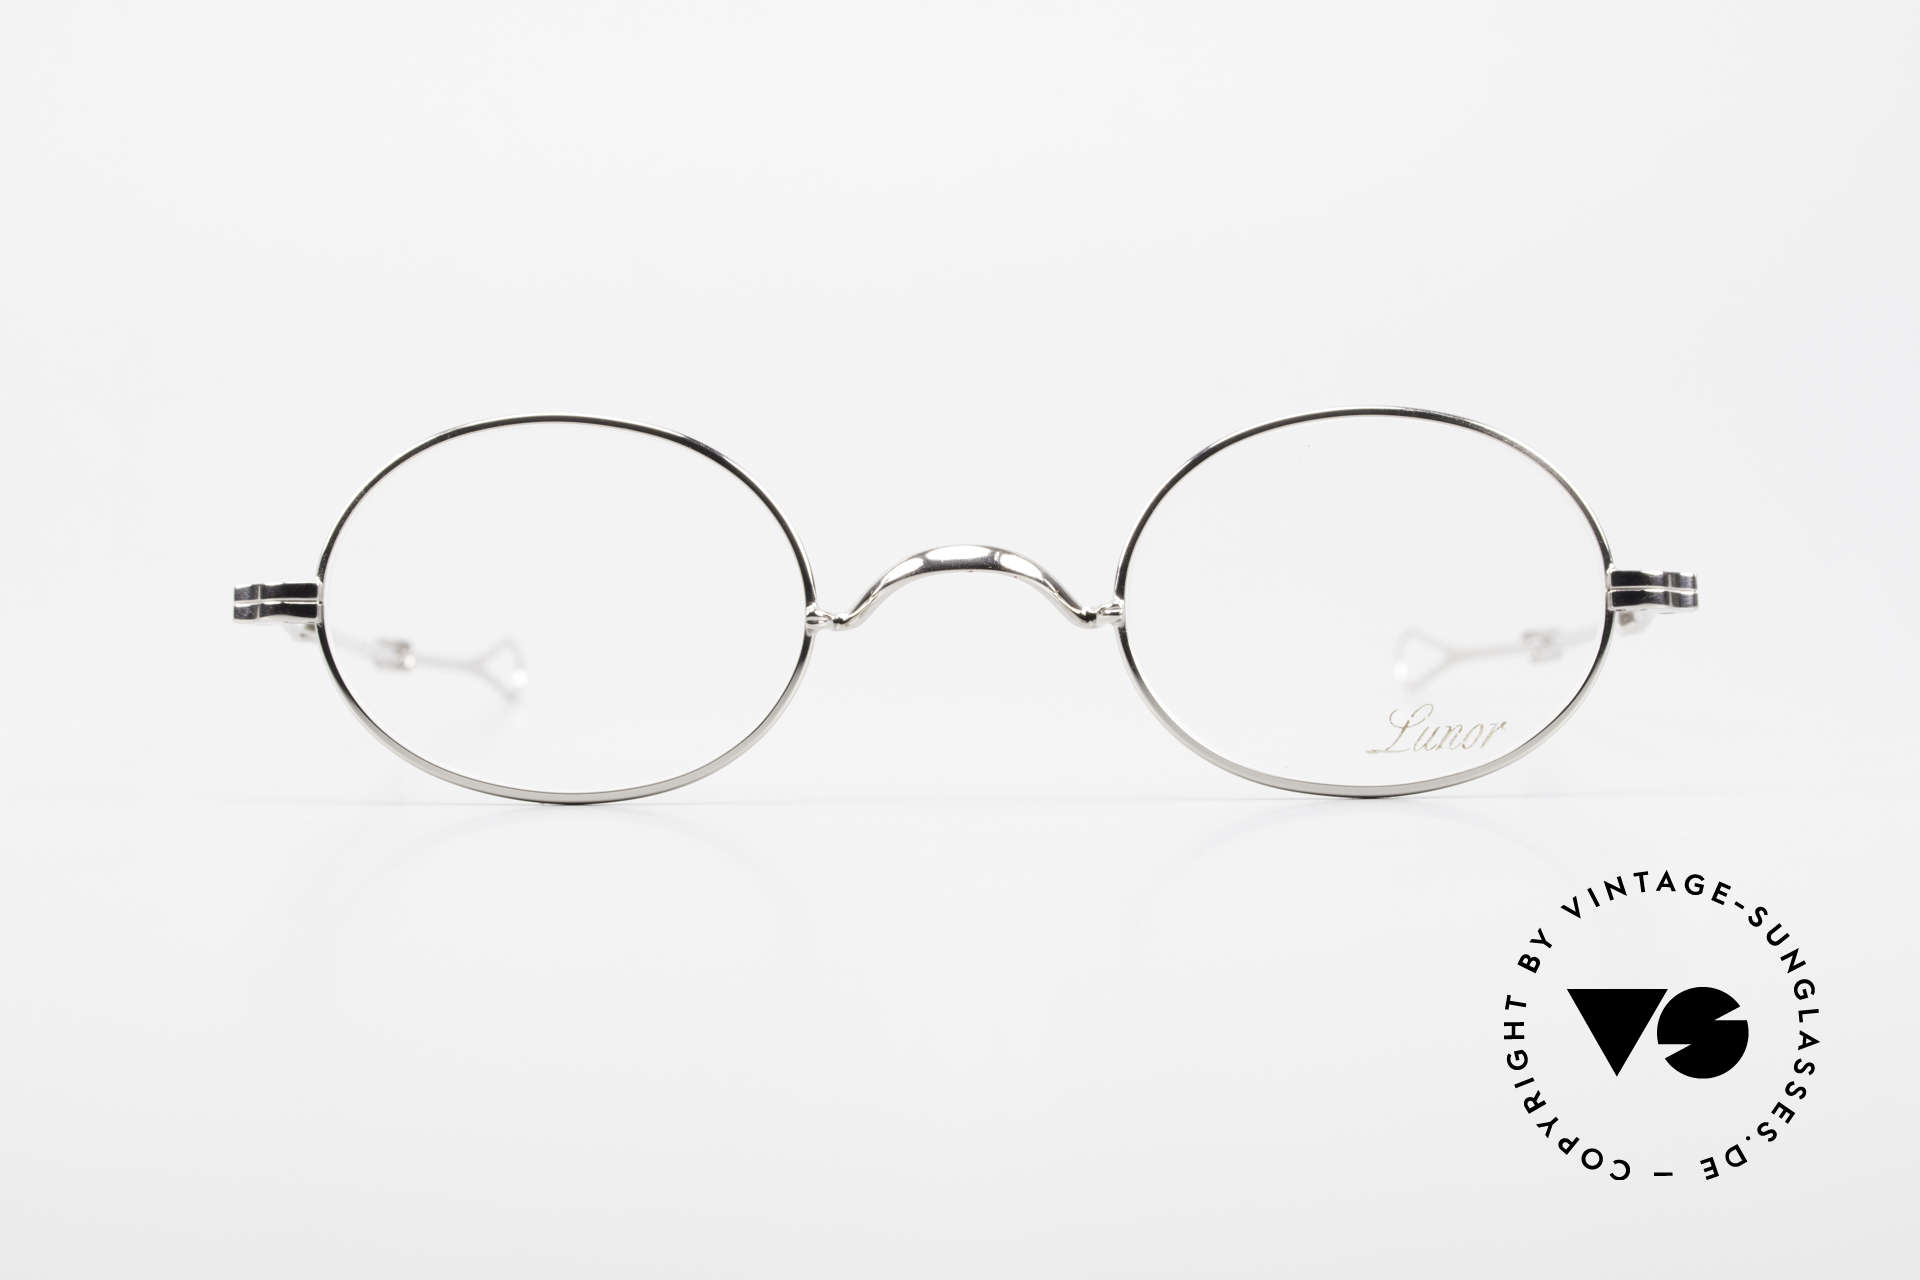 Lunor I 10 Telescopic Oval Eyeglasses Slide Temples, traditional German brand; quality handmade in Germany, Made for Men and Women